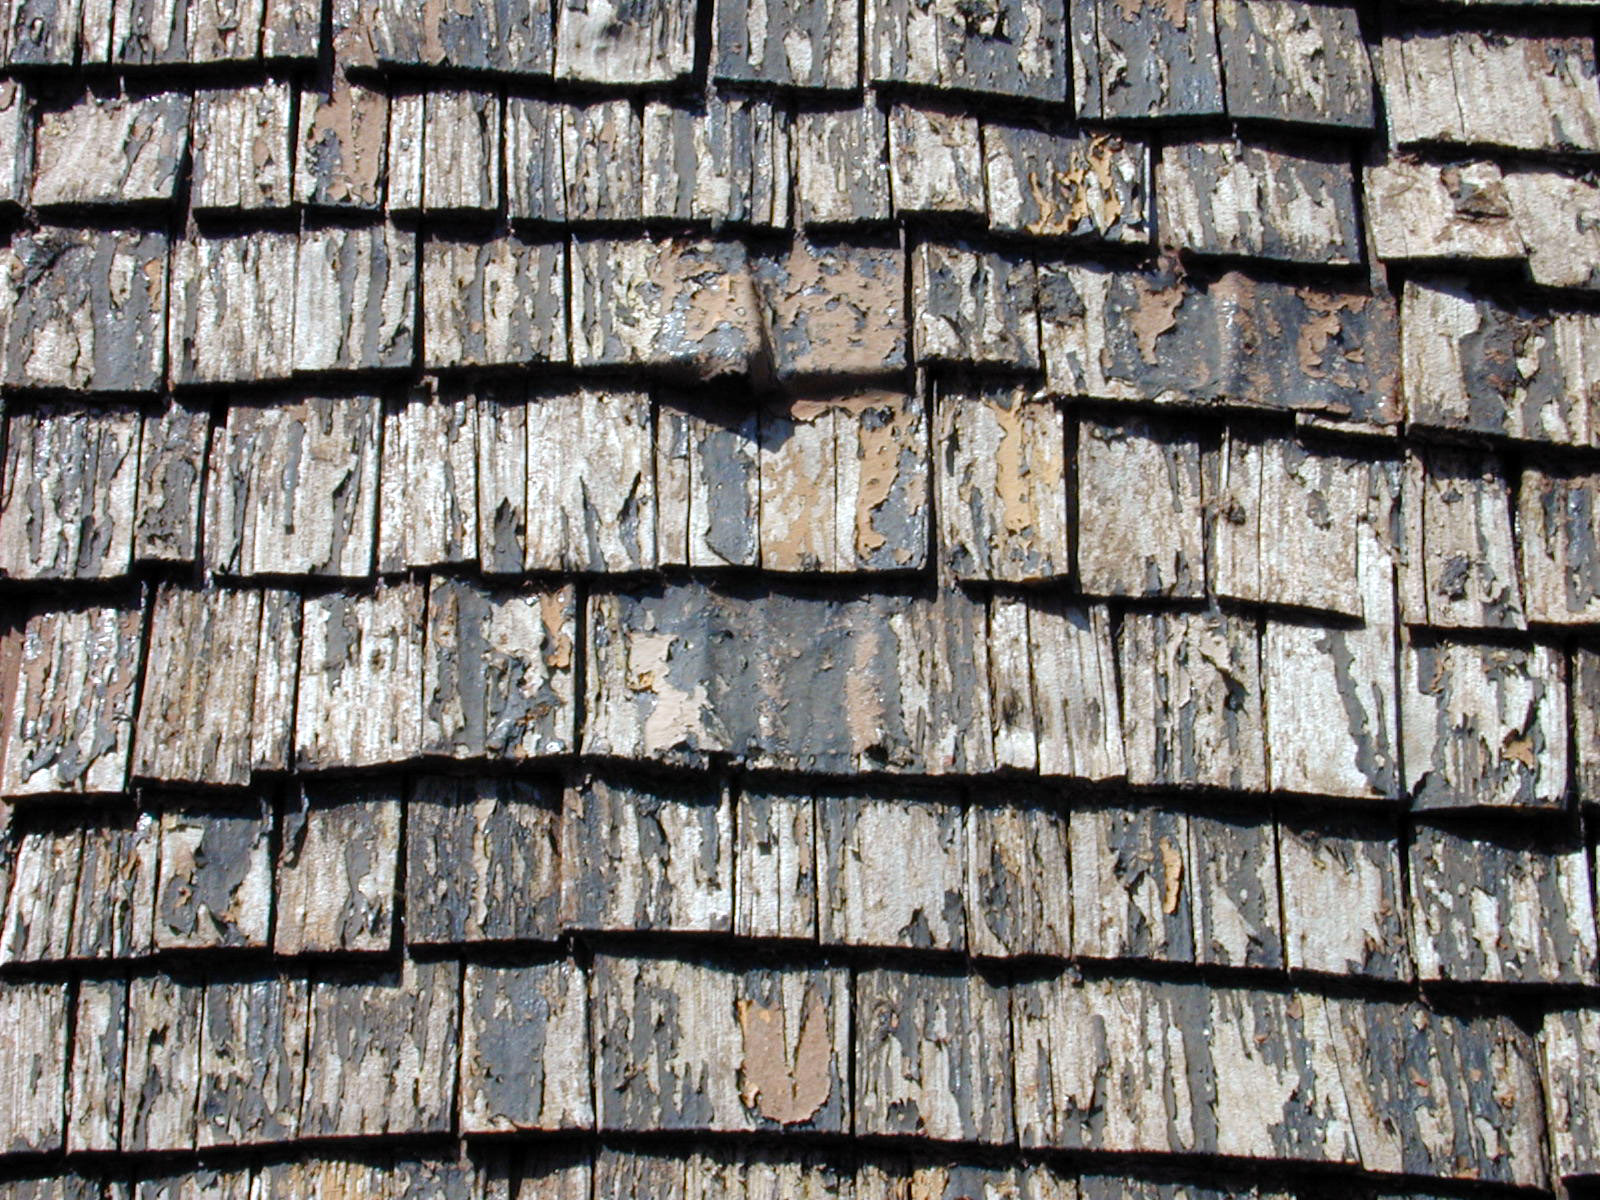 Imageafter Photos Roof Plank Planks Wood Wooden Old Worn Weathered